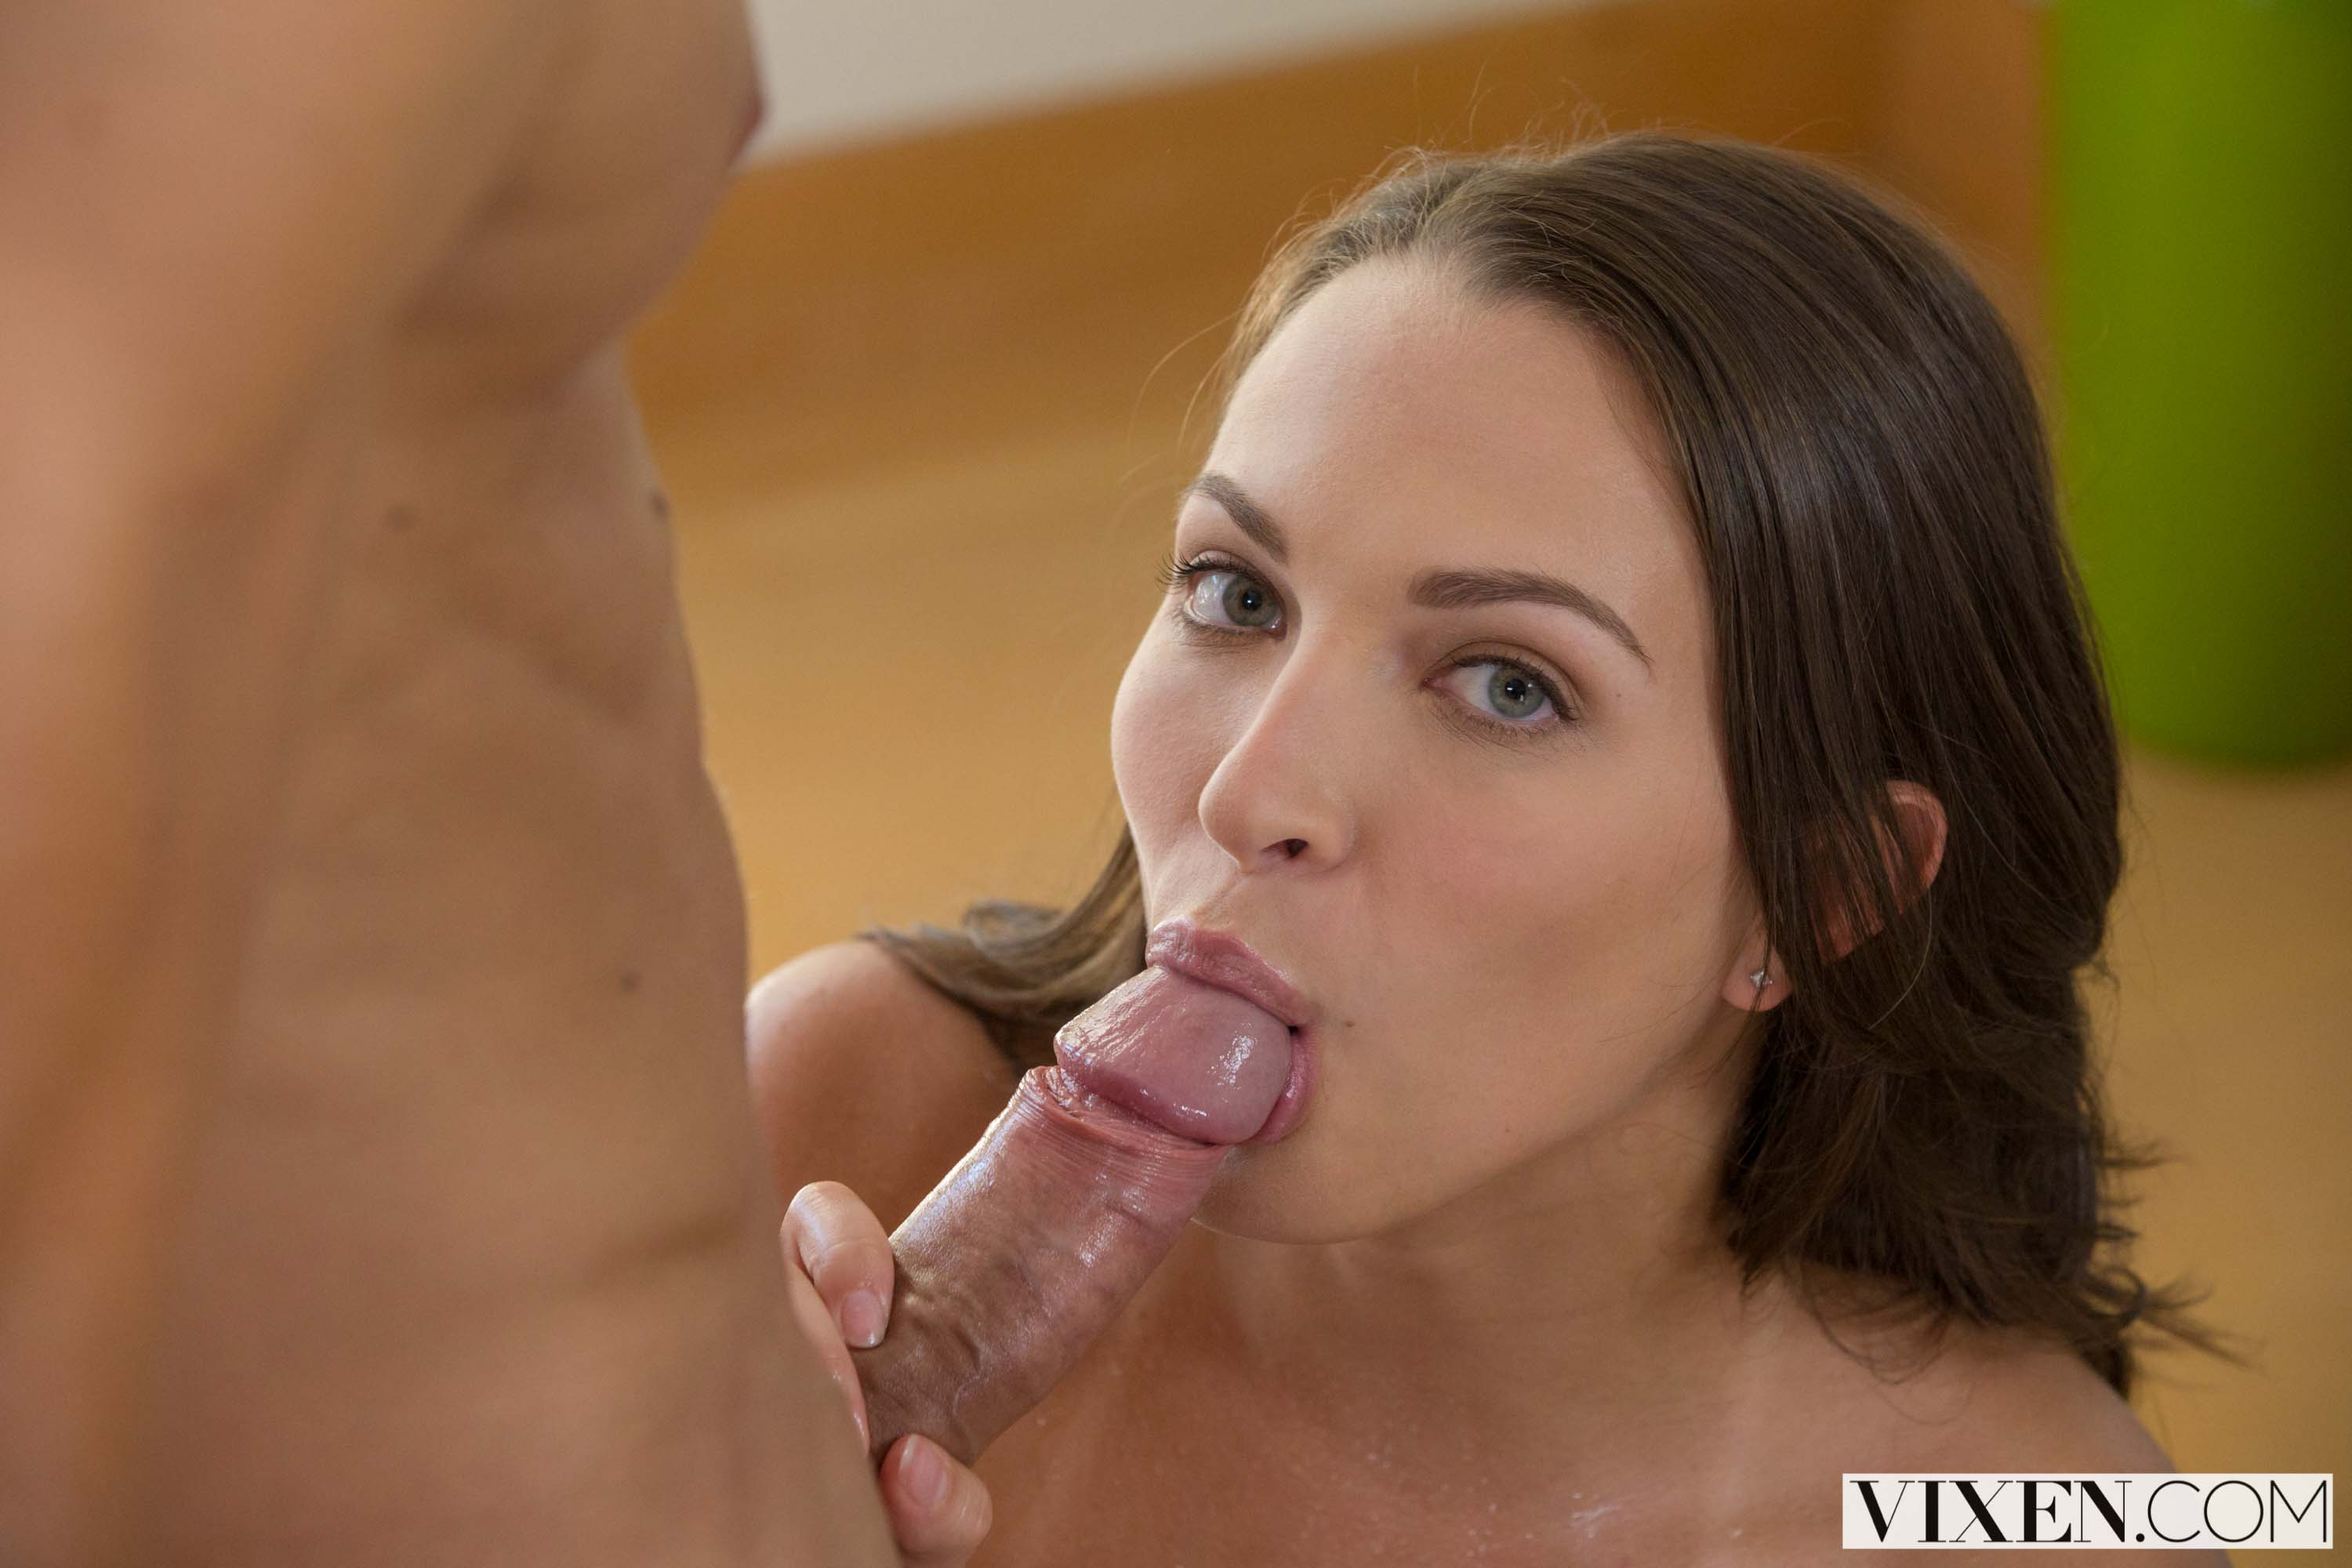 Lilly Luck Porn Pics Xfantasy